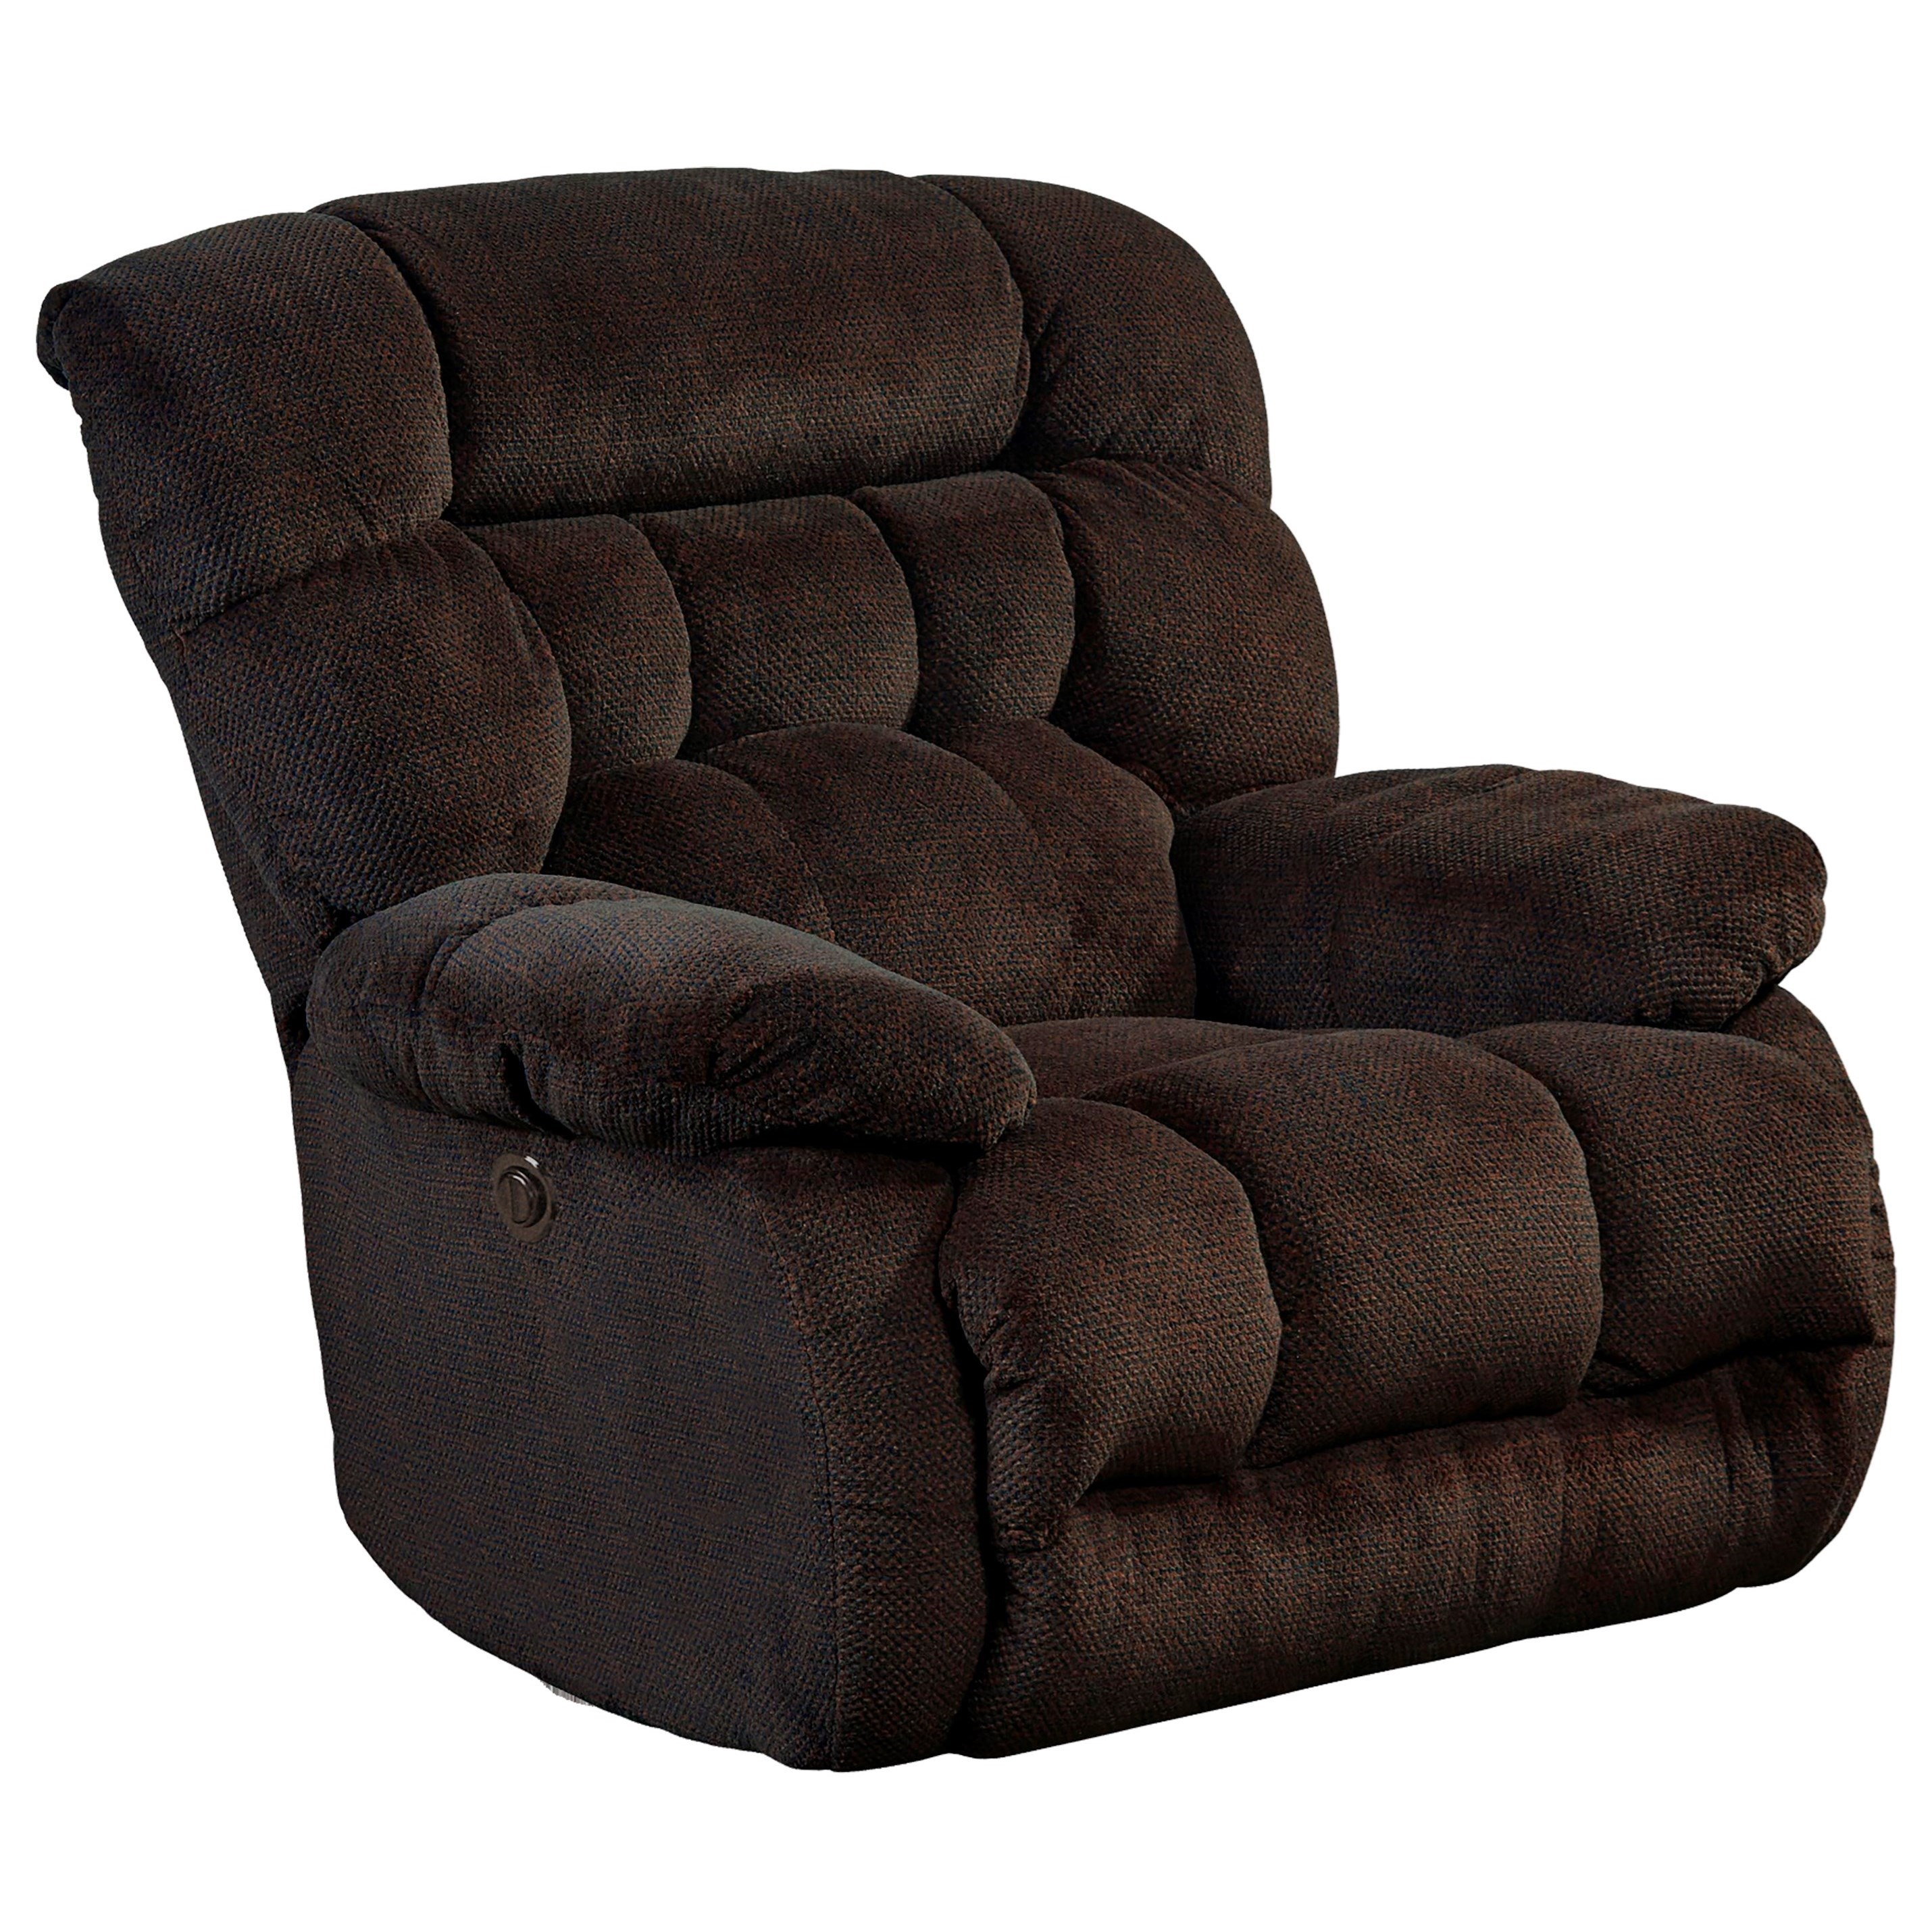 Daly Power Lay Flat Recliner by Catnapper at Northeast Factory Direct